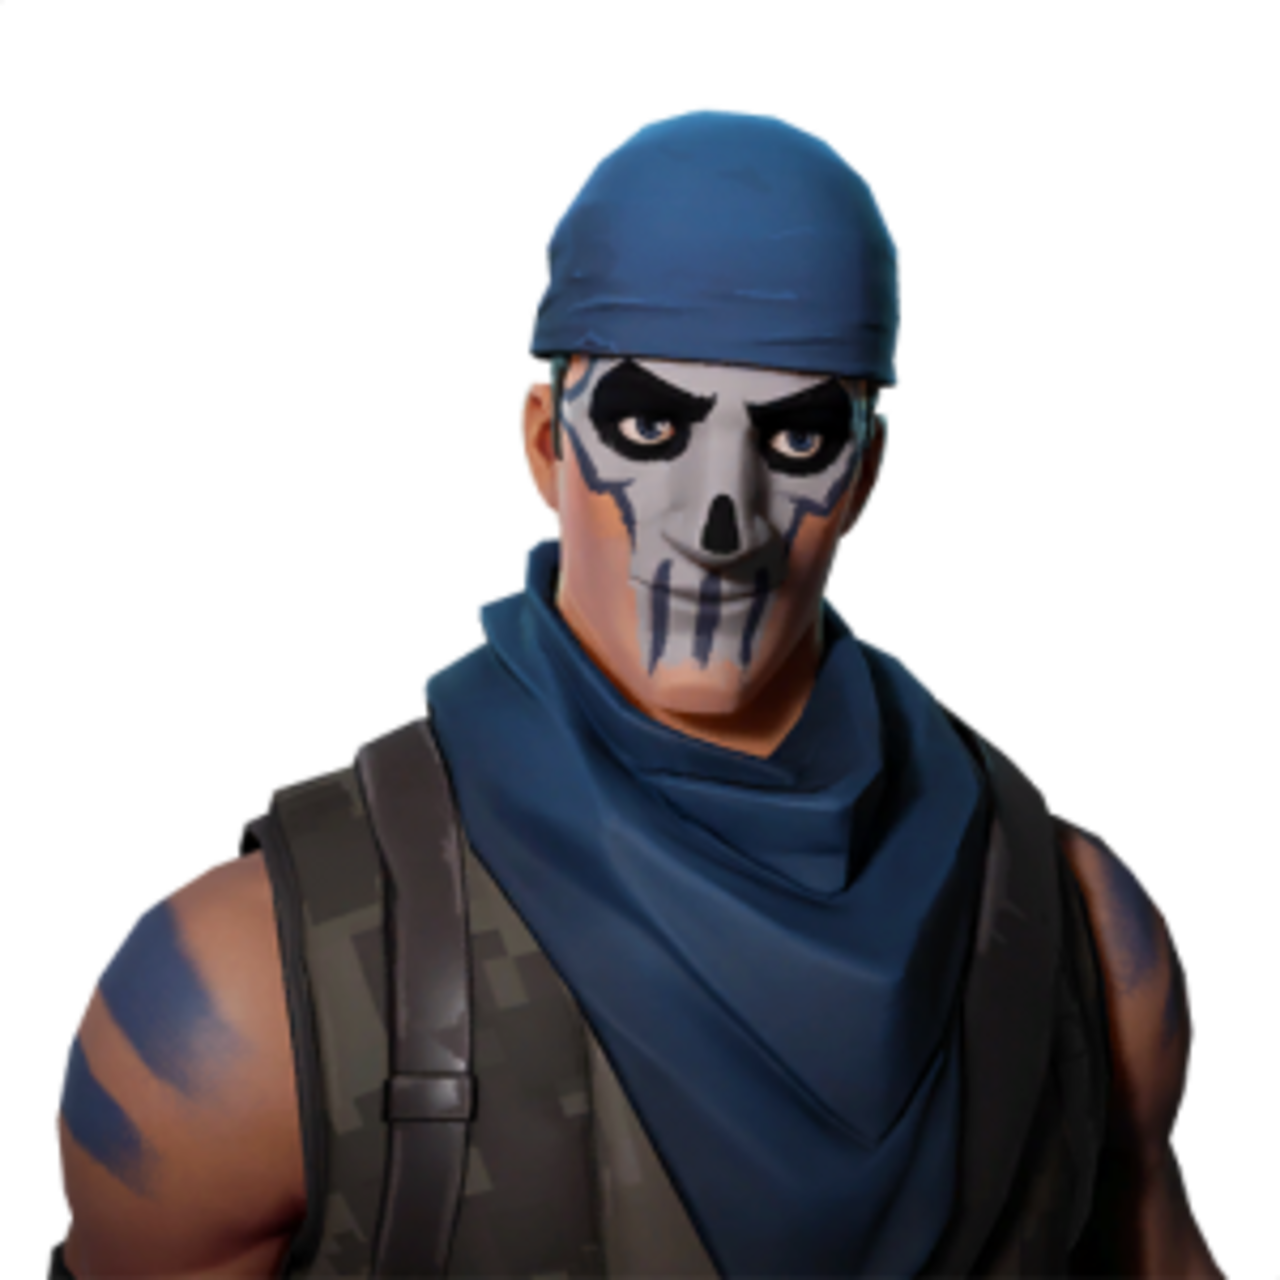 Neck Mask Royale Fortnite Battle Ninja PNG Image